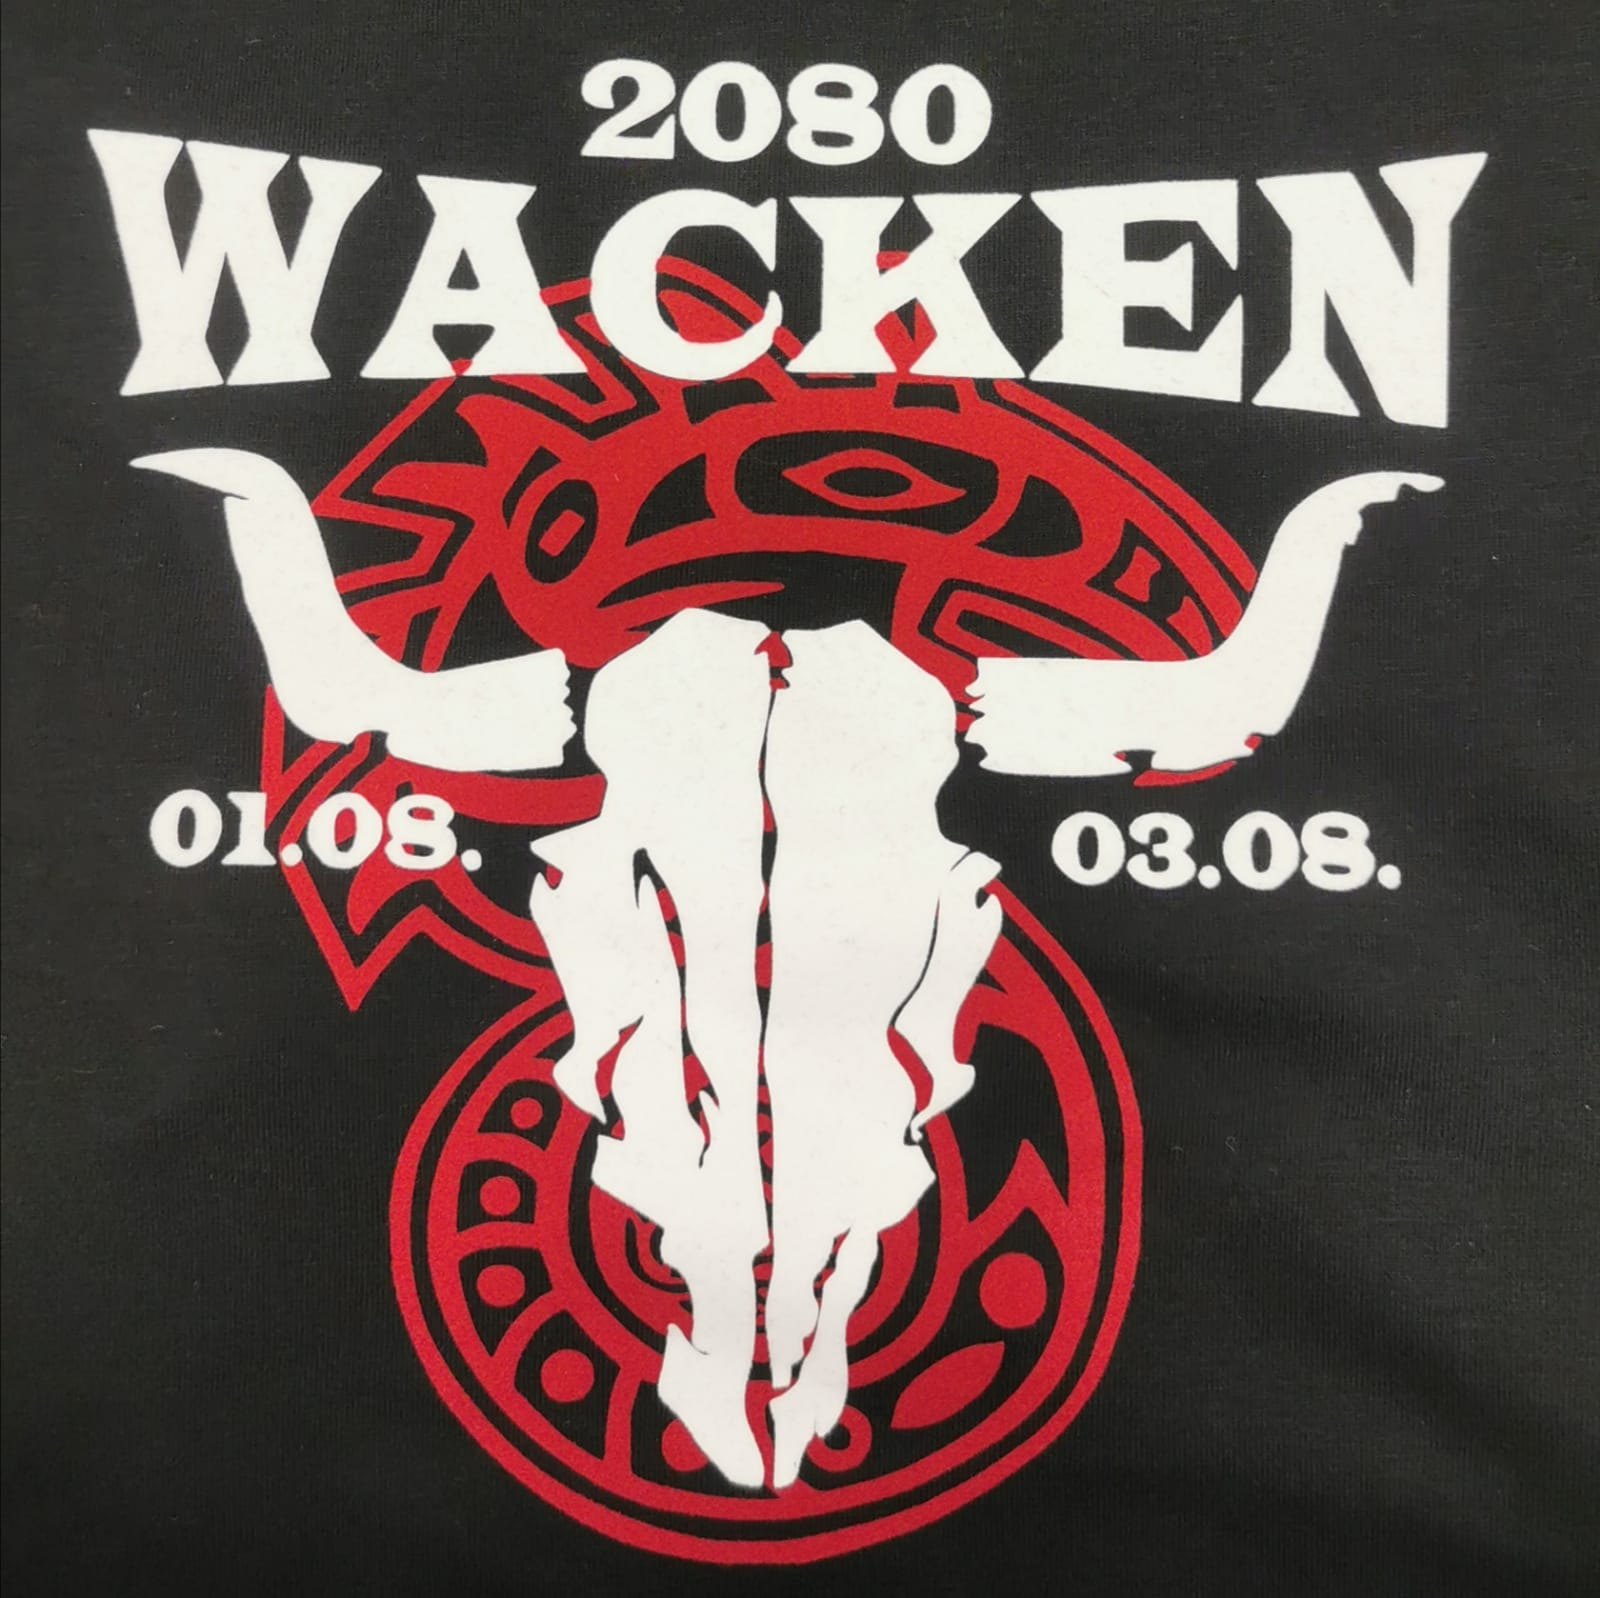 Wacken 2080 Shadowrun T-Shirt Logo.jpg